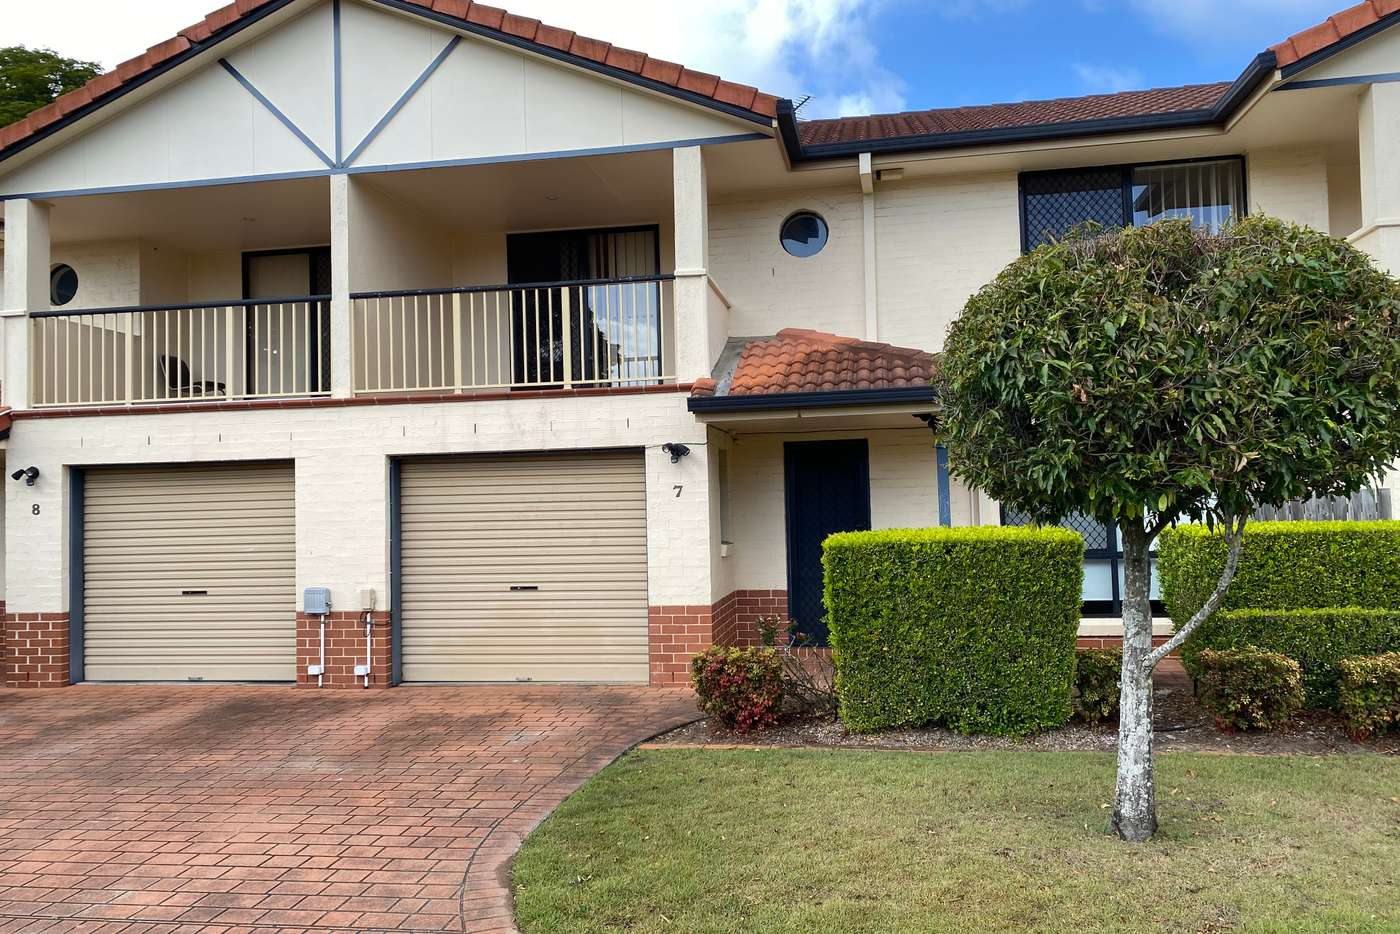 Main view of Homely townhouse listing, 7/8 Deason Street,, Sunnybank QLD 4109